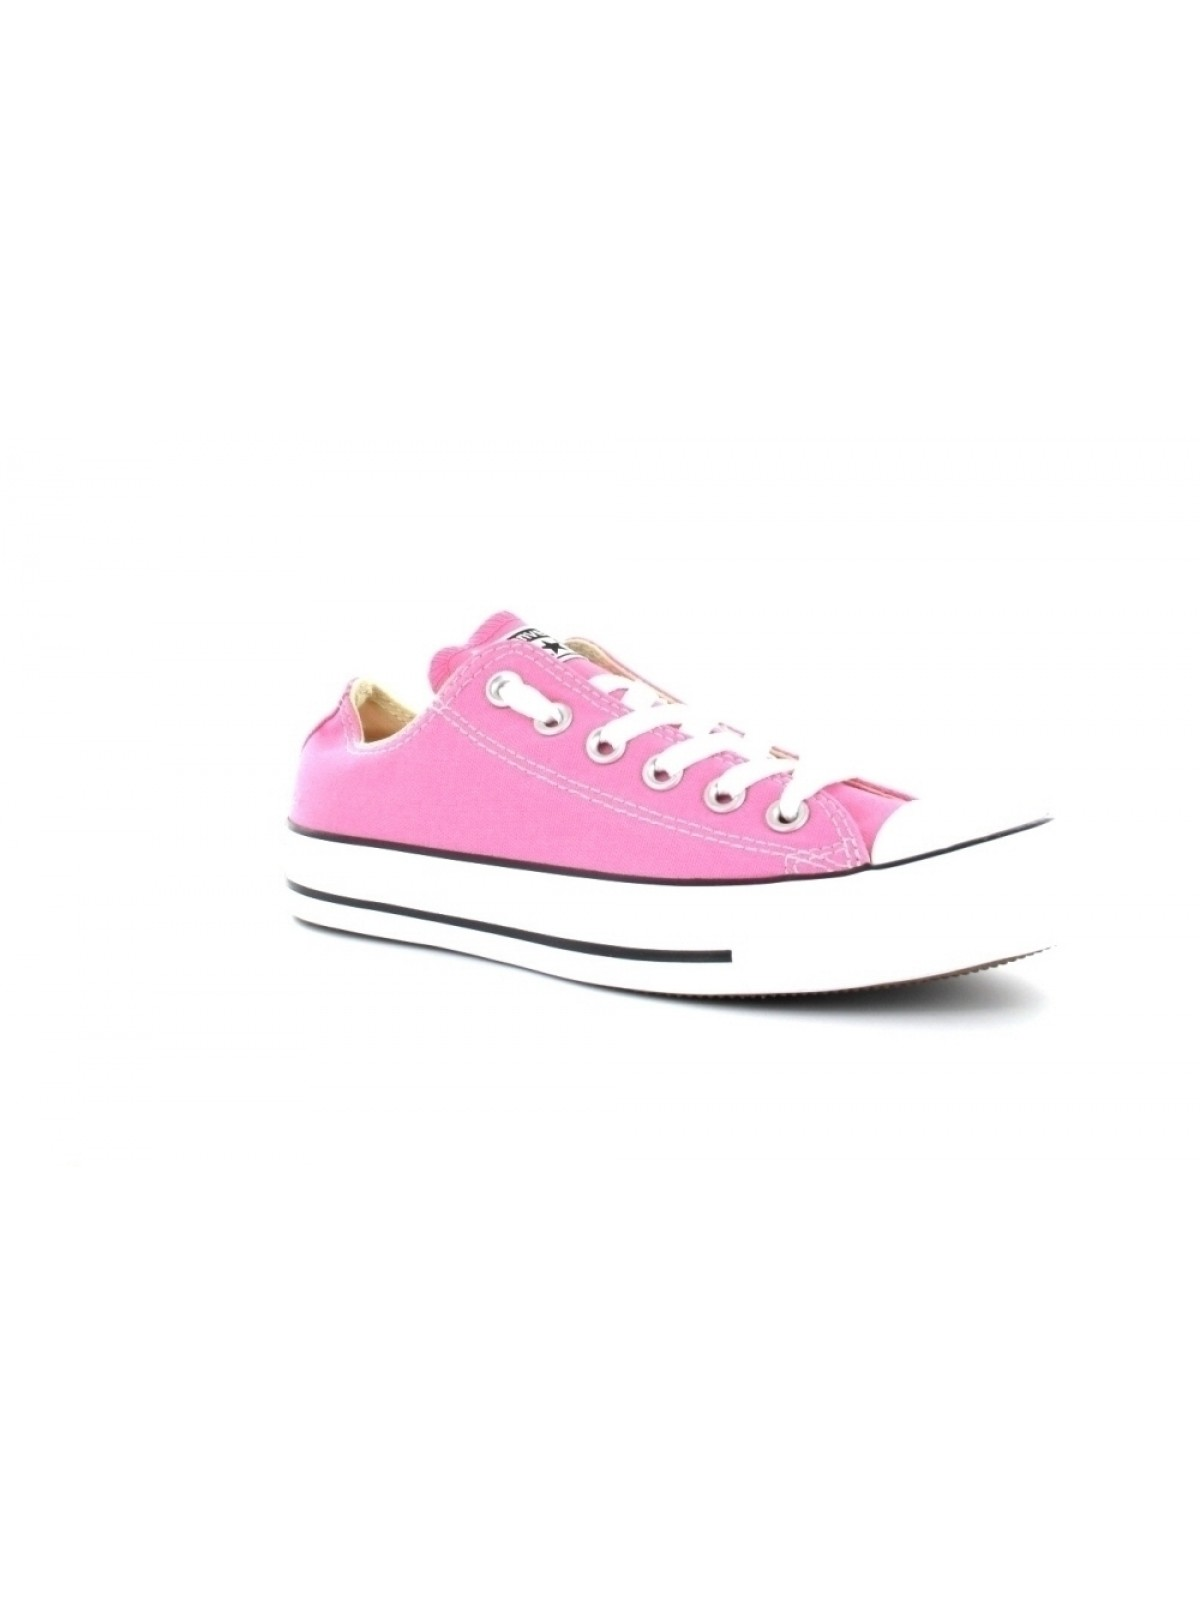 Converse Chuck Taylor all star toile basse new pink